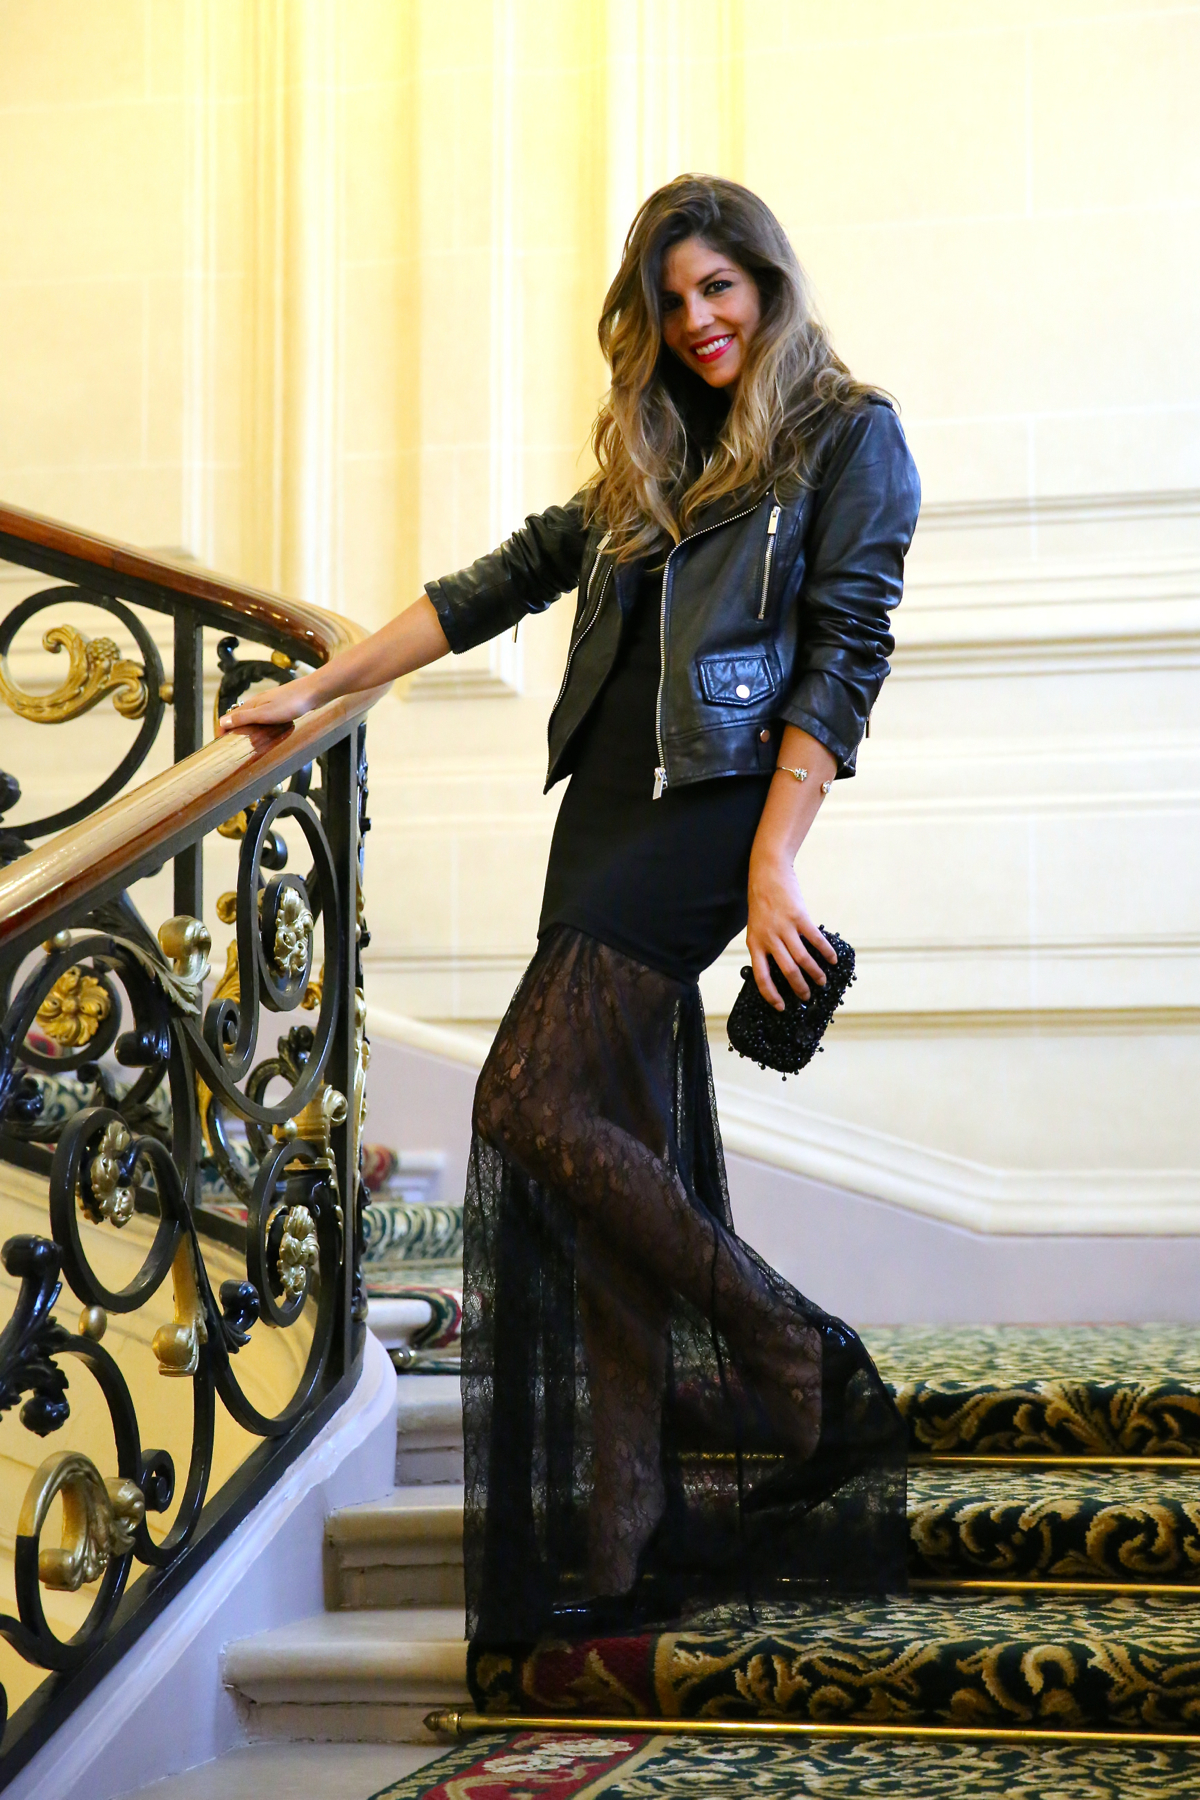 trendy_taste-look-outfit-street_style-ootd-blog-blogger-fashion_spain-moda_españa-vestido_fiesta-coctel-cocktail_party_dress-maje-lancôme-nouvelle_vague-paris-11